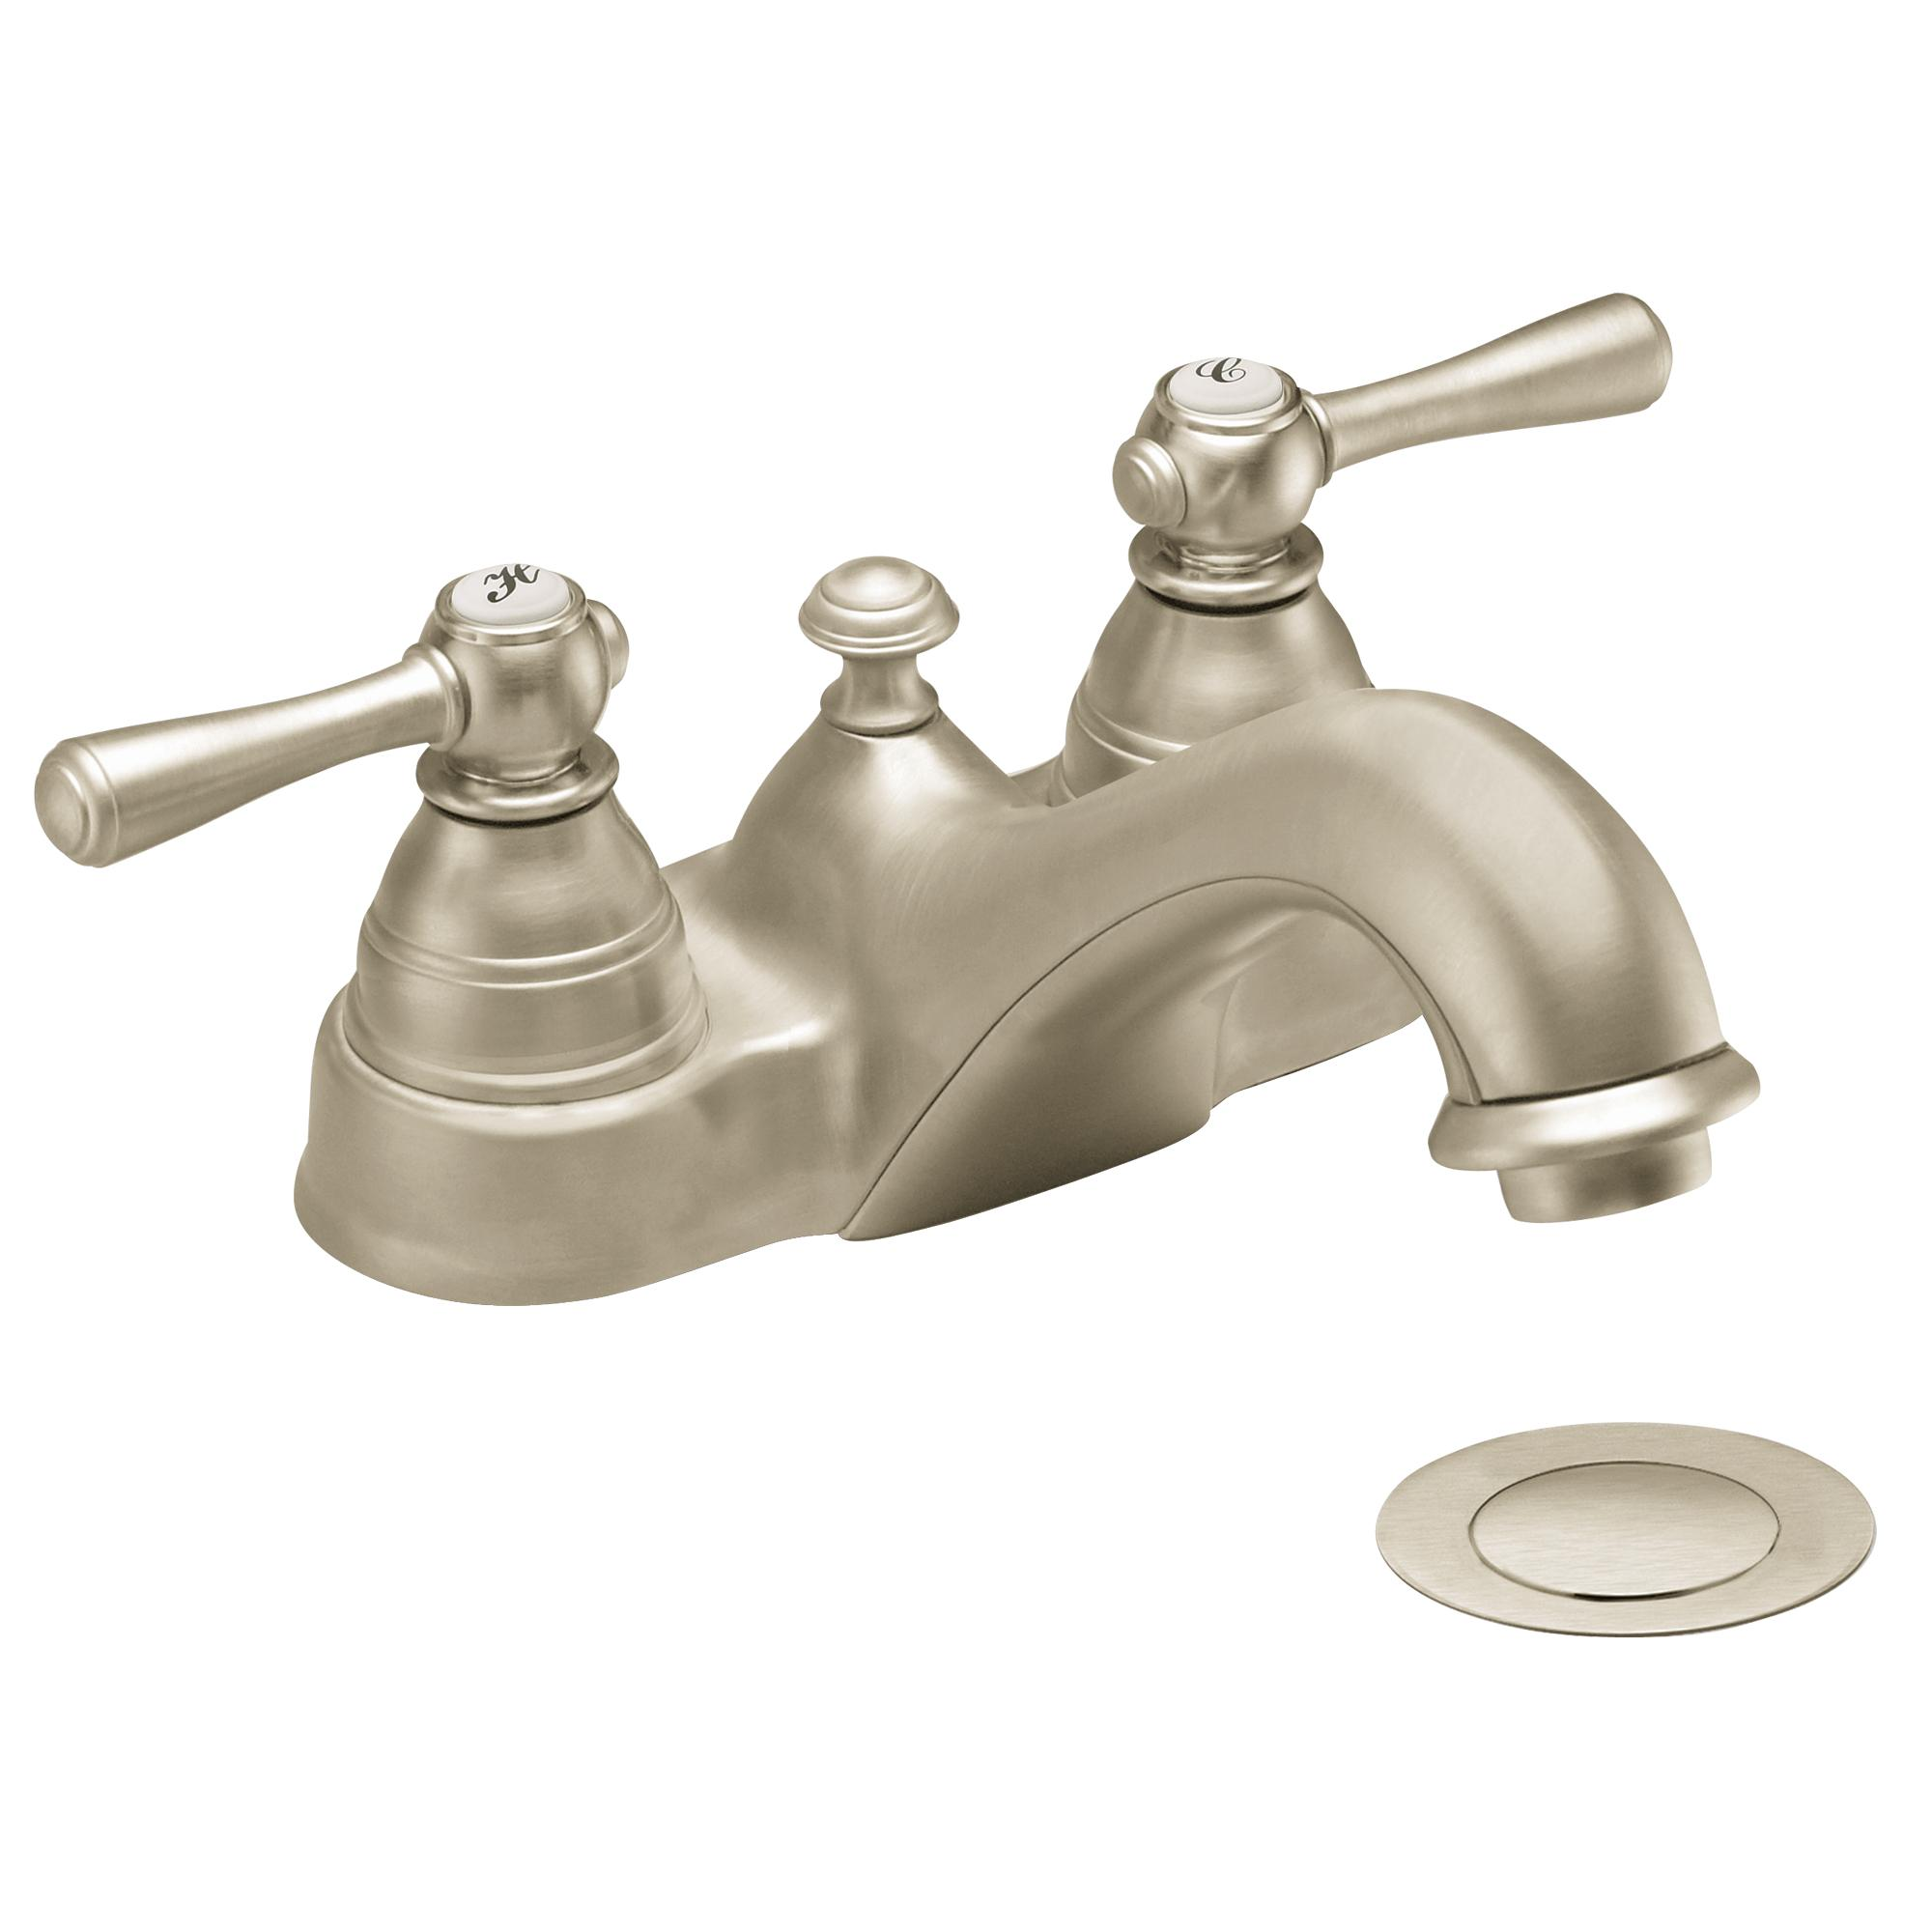 Moen 6101BN Kingsley Two-Handle Low Arc Bathroom Faucet, Brushed ...